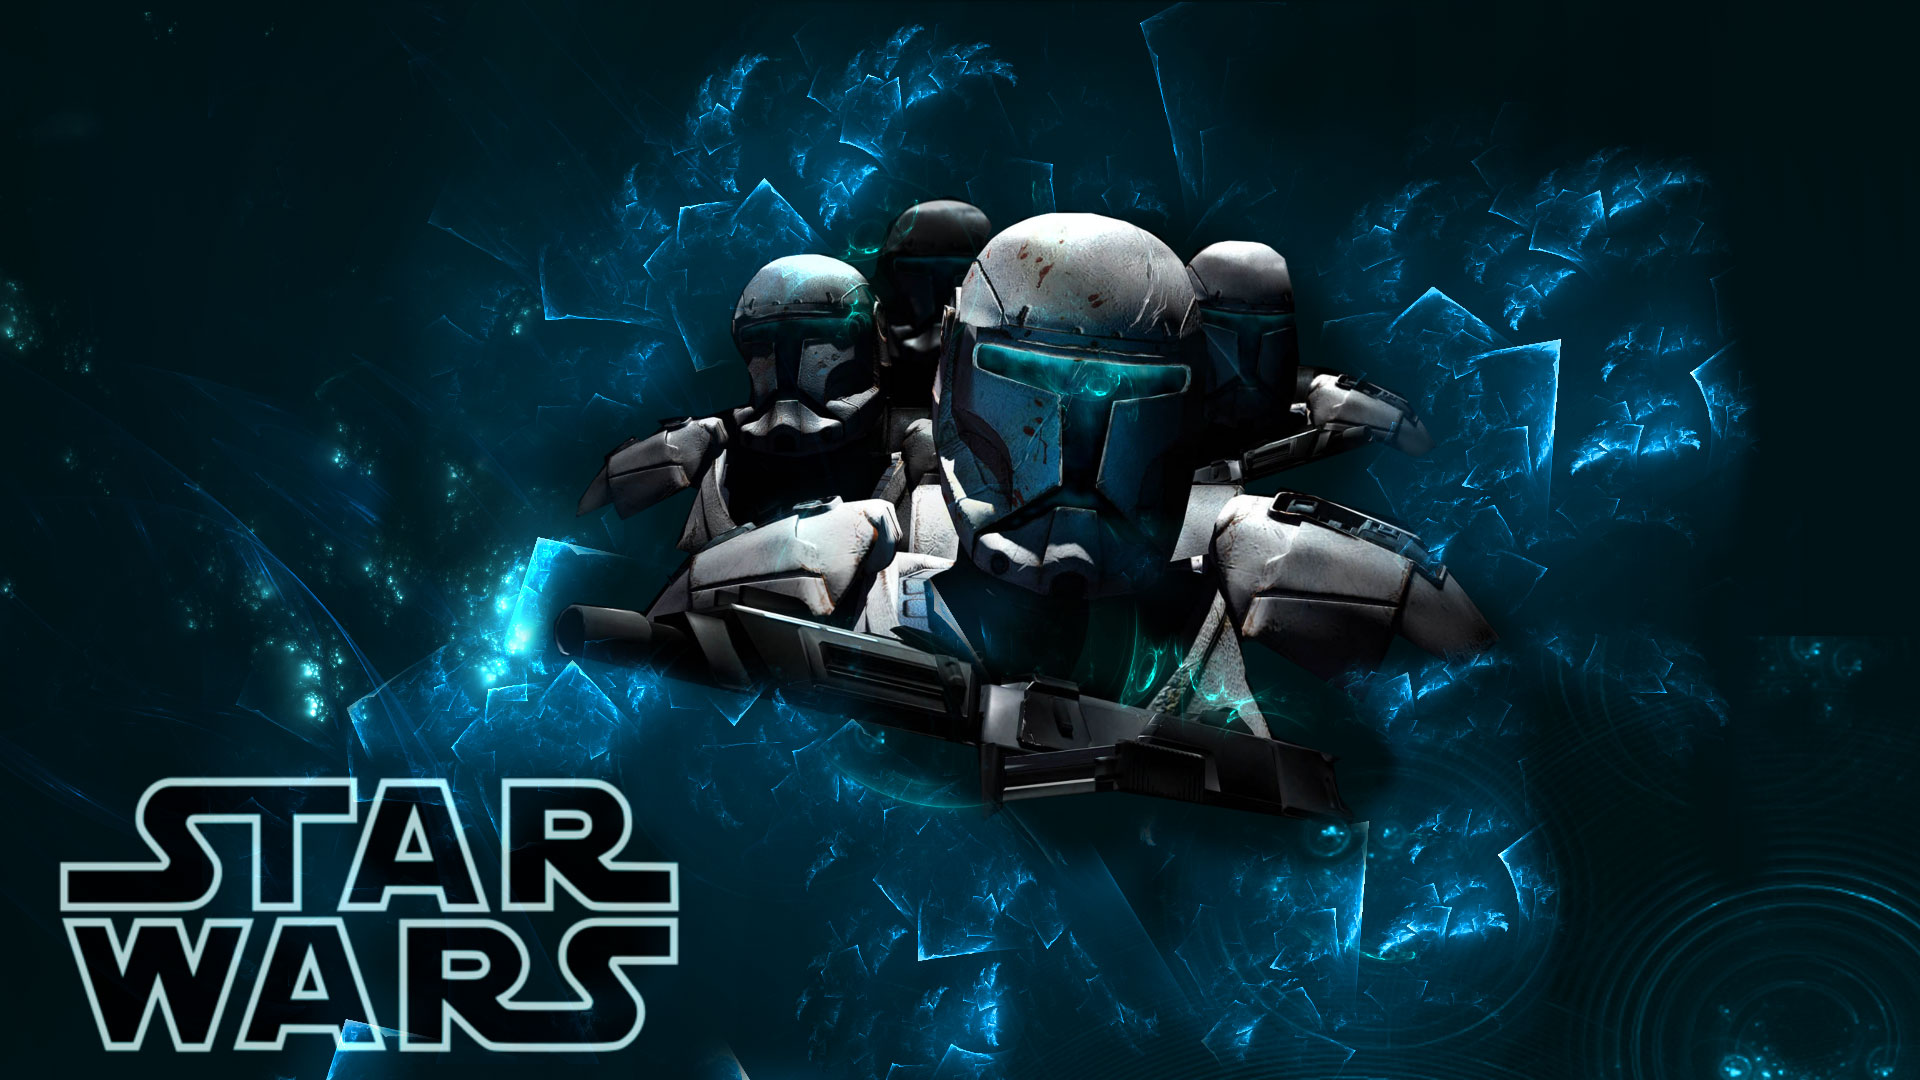 Star Wars wallpaper 4 | WallpapersBQ